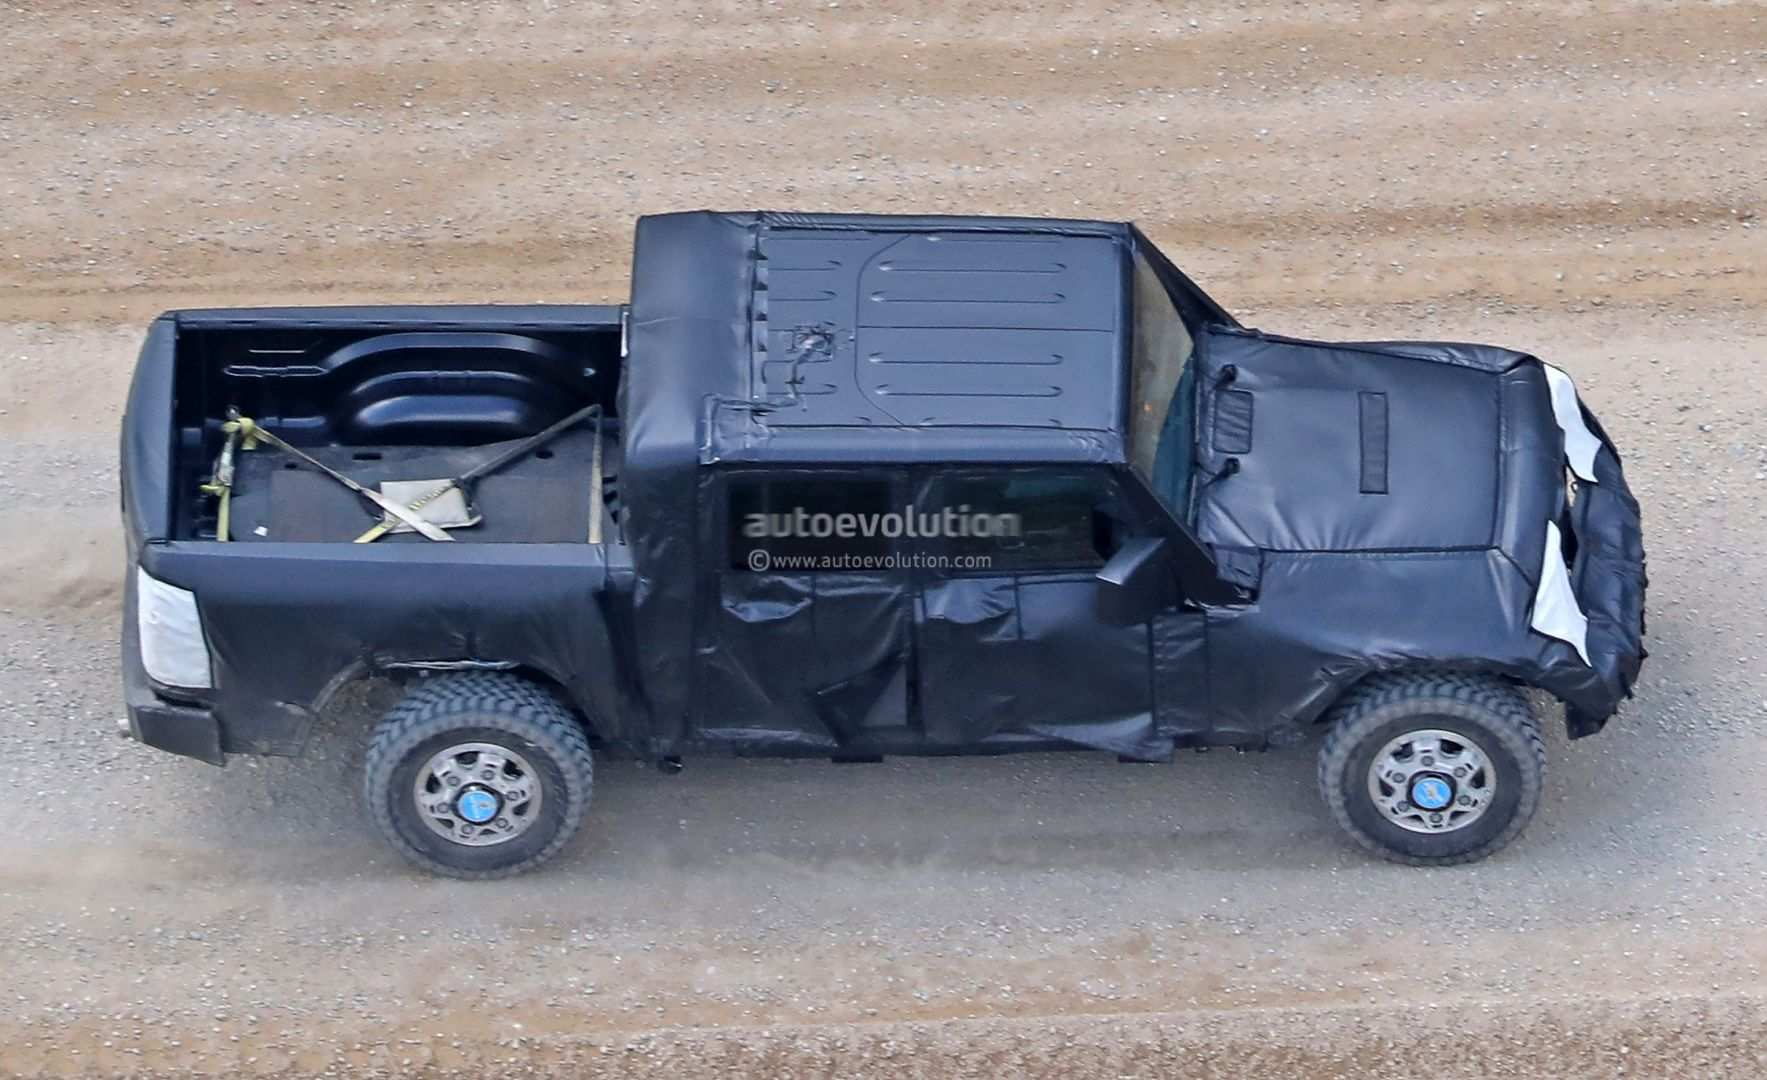 41 Gallery of 2019 Jeep Scrambler Cost Redesign with 2019 Jeep Scrambler Cost